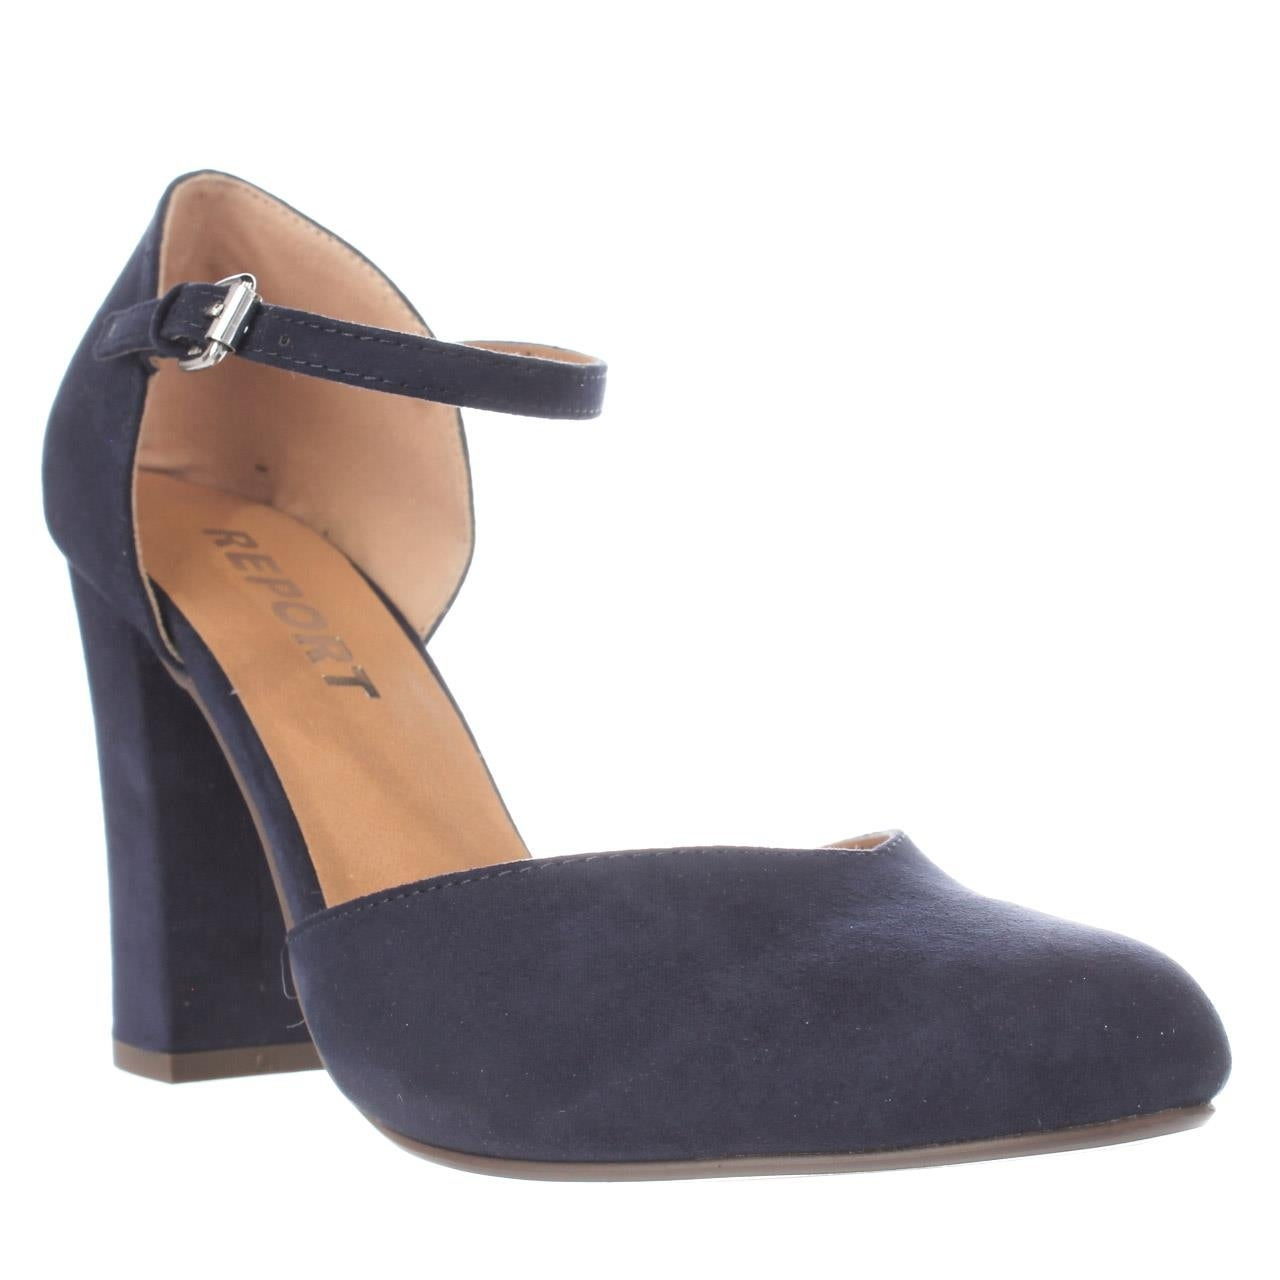 05a51585d59 Shop Report Footwear Ladee Ankle Strap Pumps - Navy - Free Shipping Today -  Overstock - 14826300